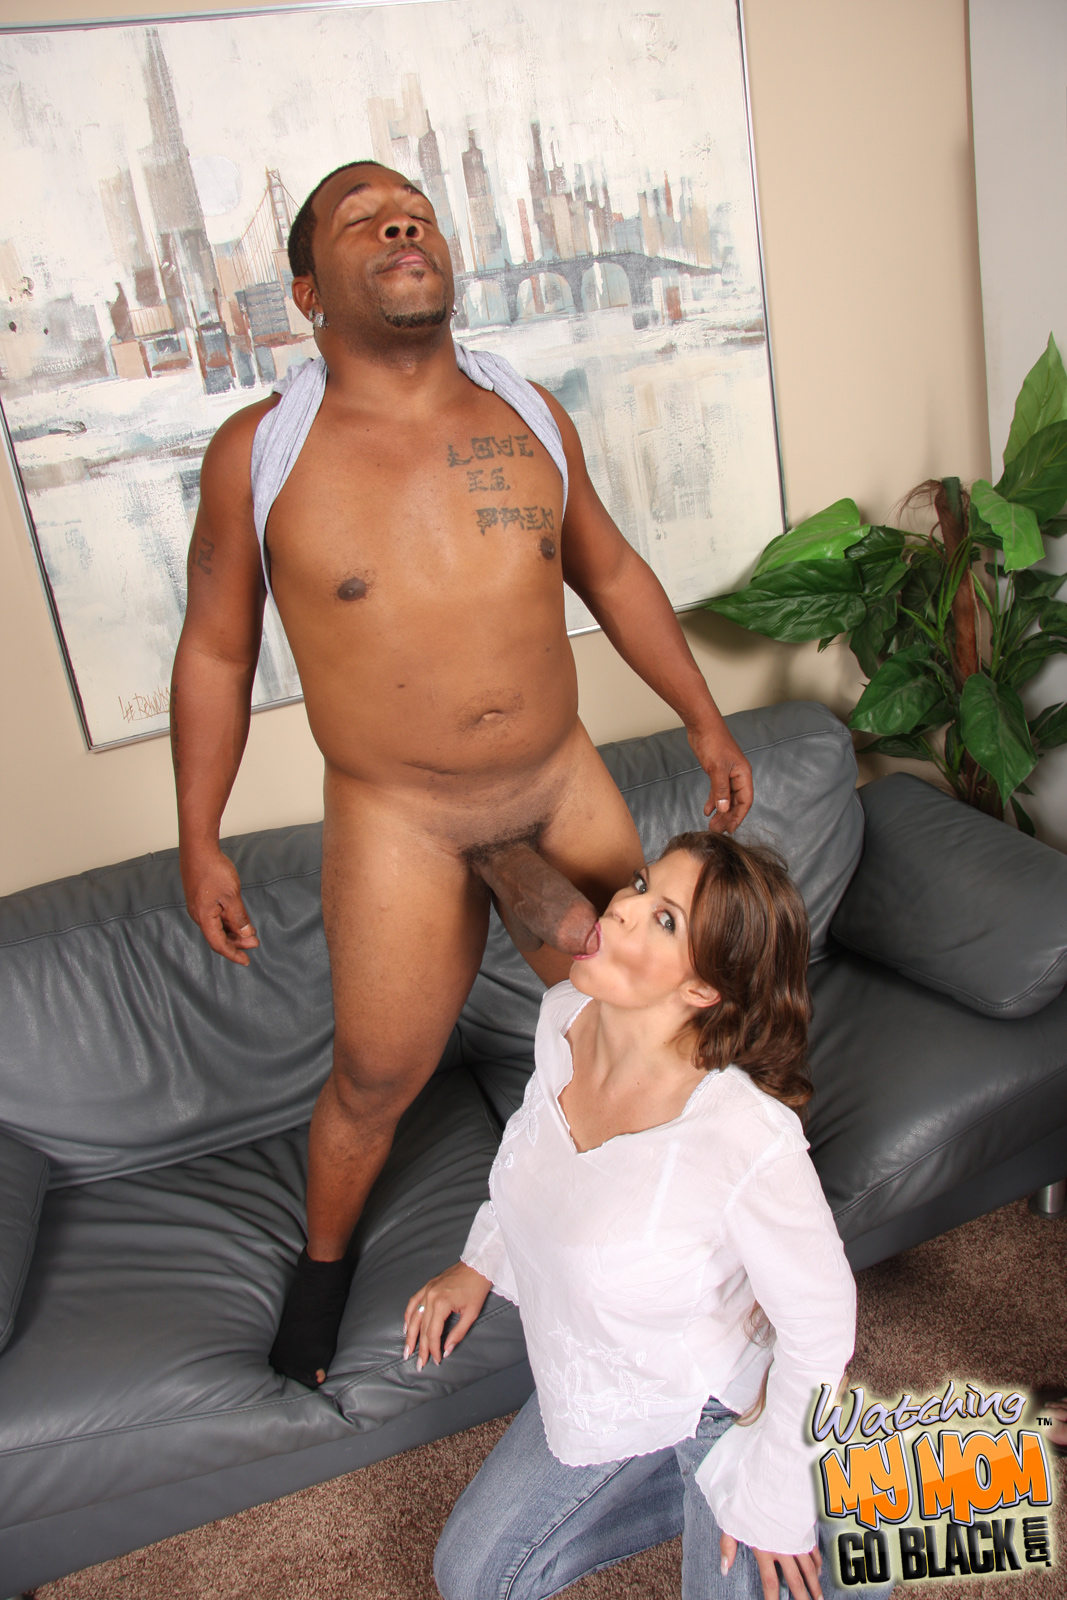 free porn samples of watching my mom go black - white mom fucked